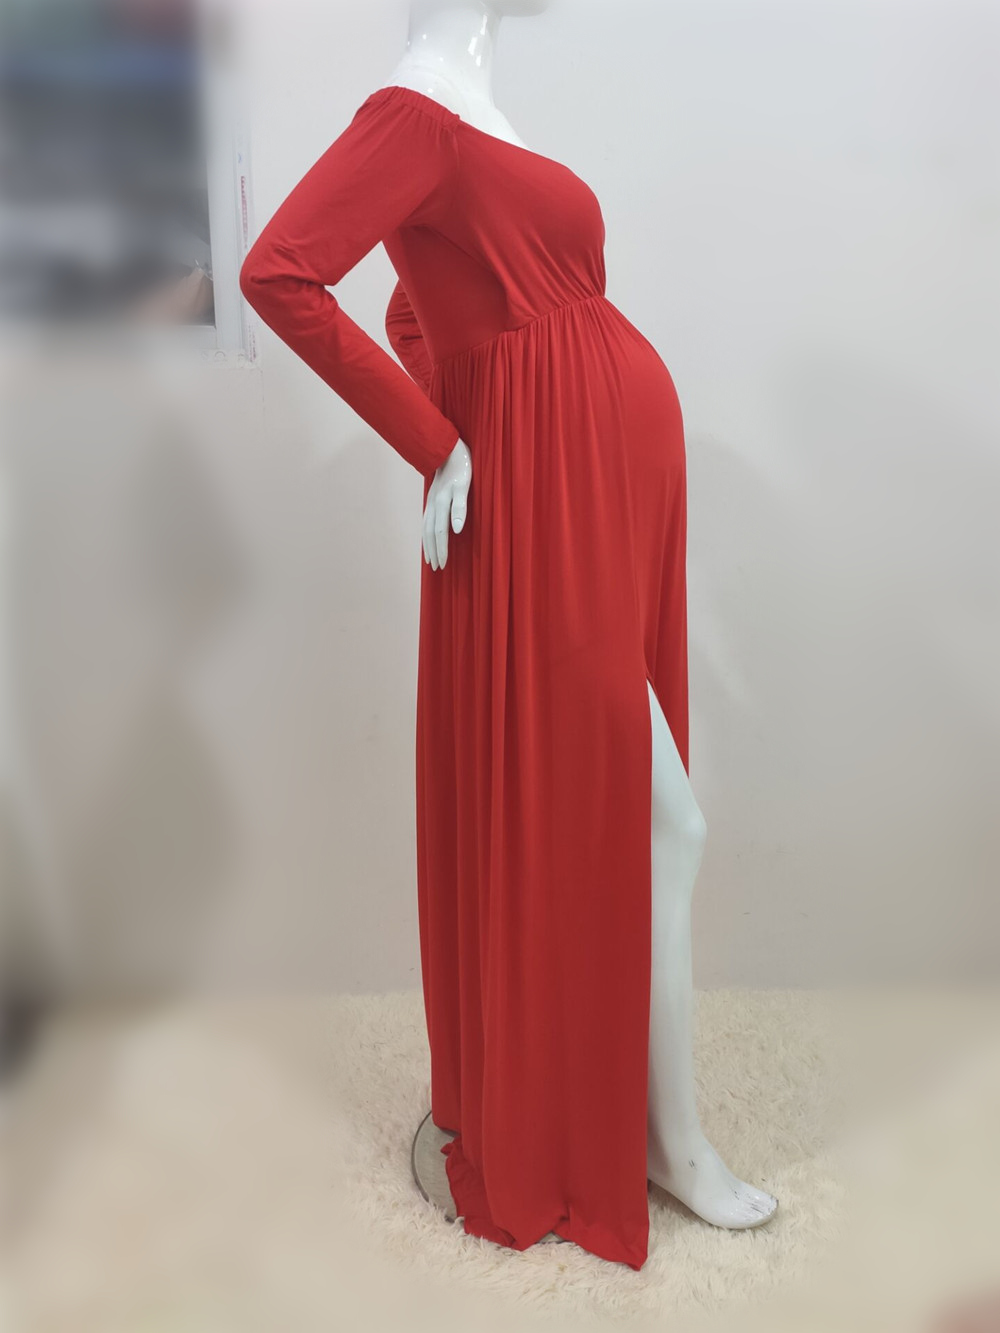 Long Shoulderless Maternity Photography Props Dresses Sexy Split Front Pregnancy Dress Photo Shoot For Pregnant Women Maxi Gown (5)